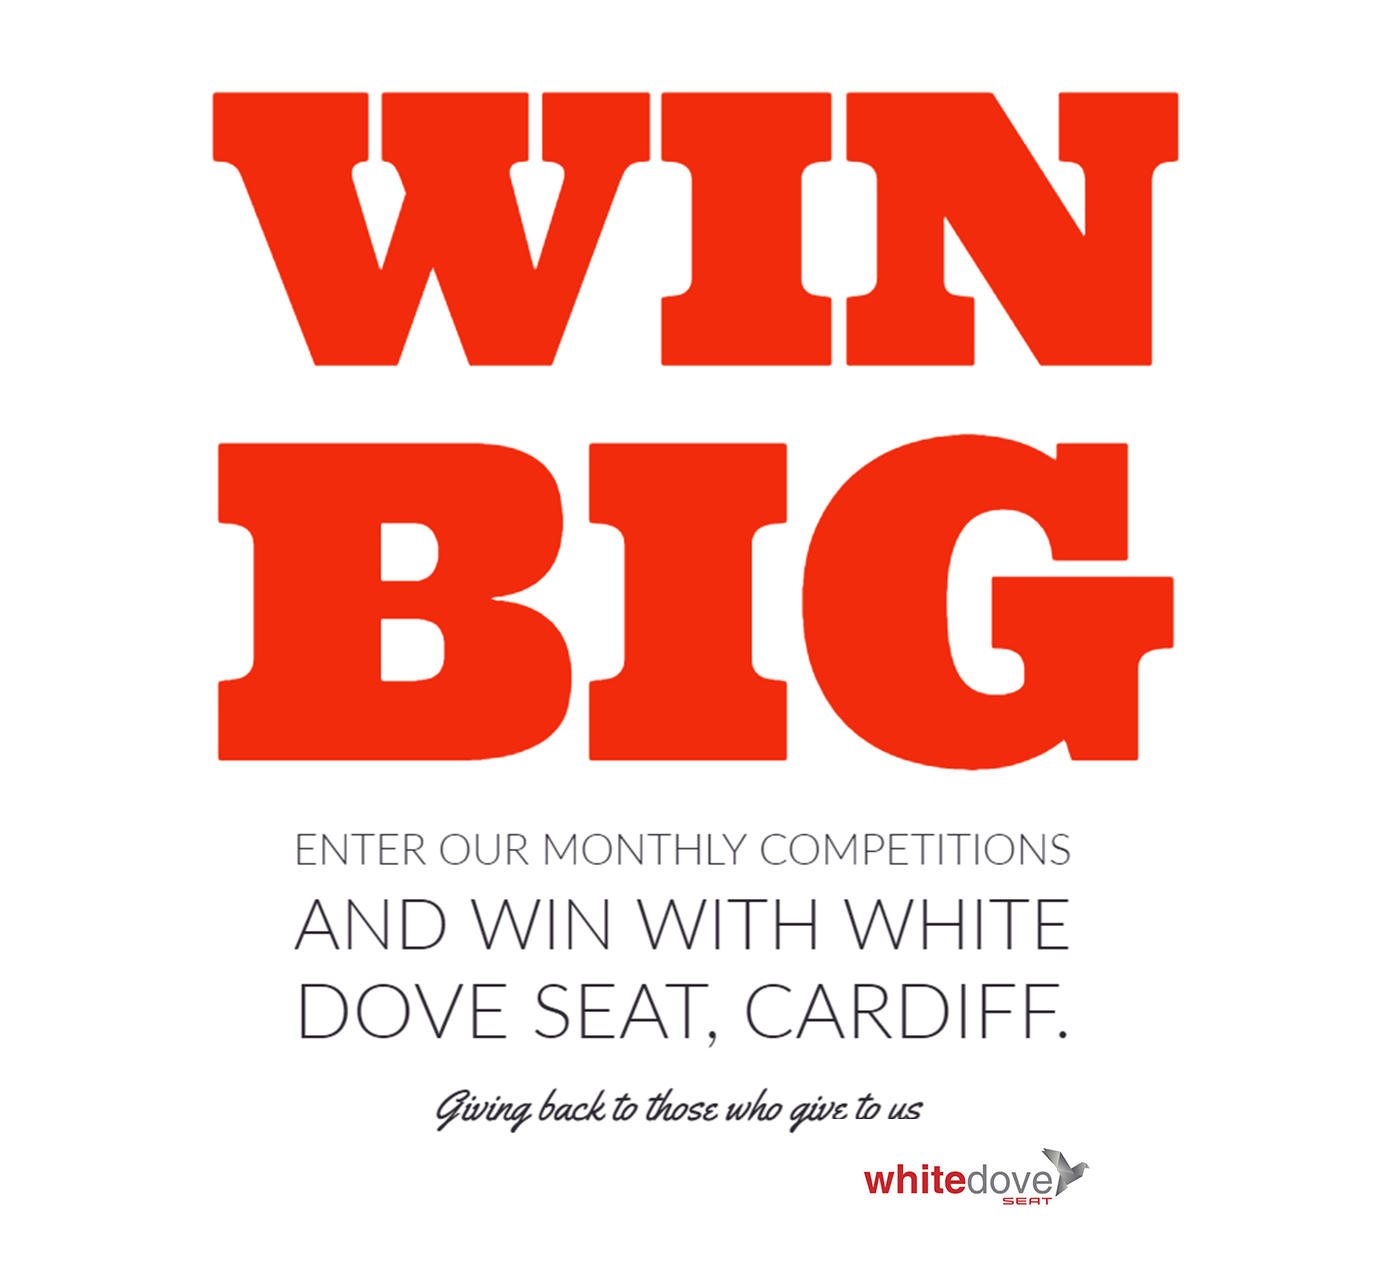 COMPETITIONS WITH WHITE DOVE SEAT, CARDIFF